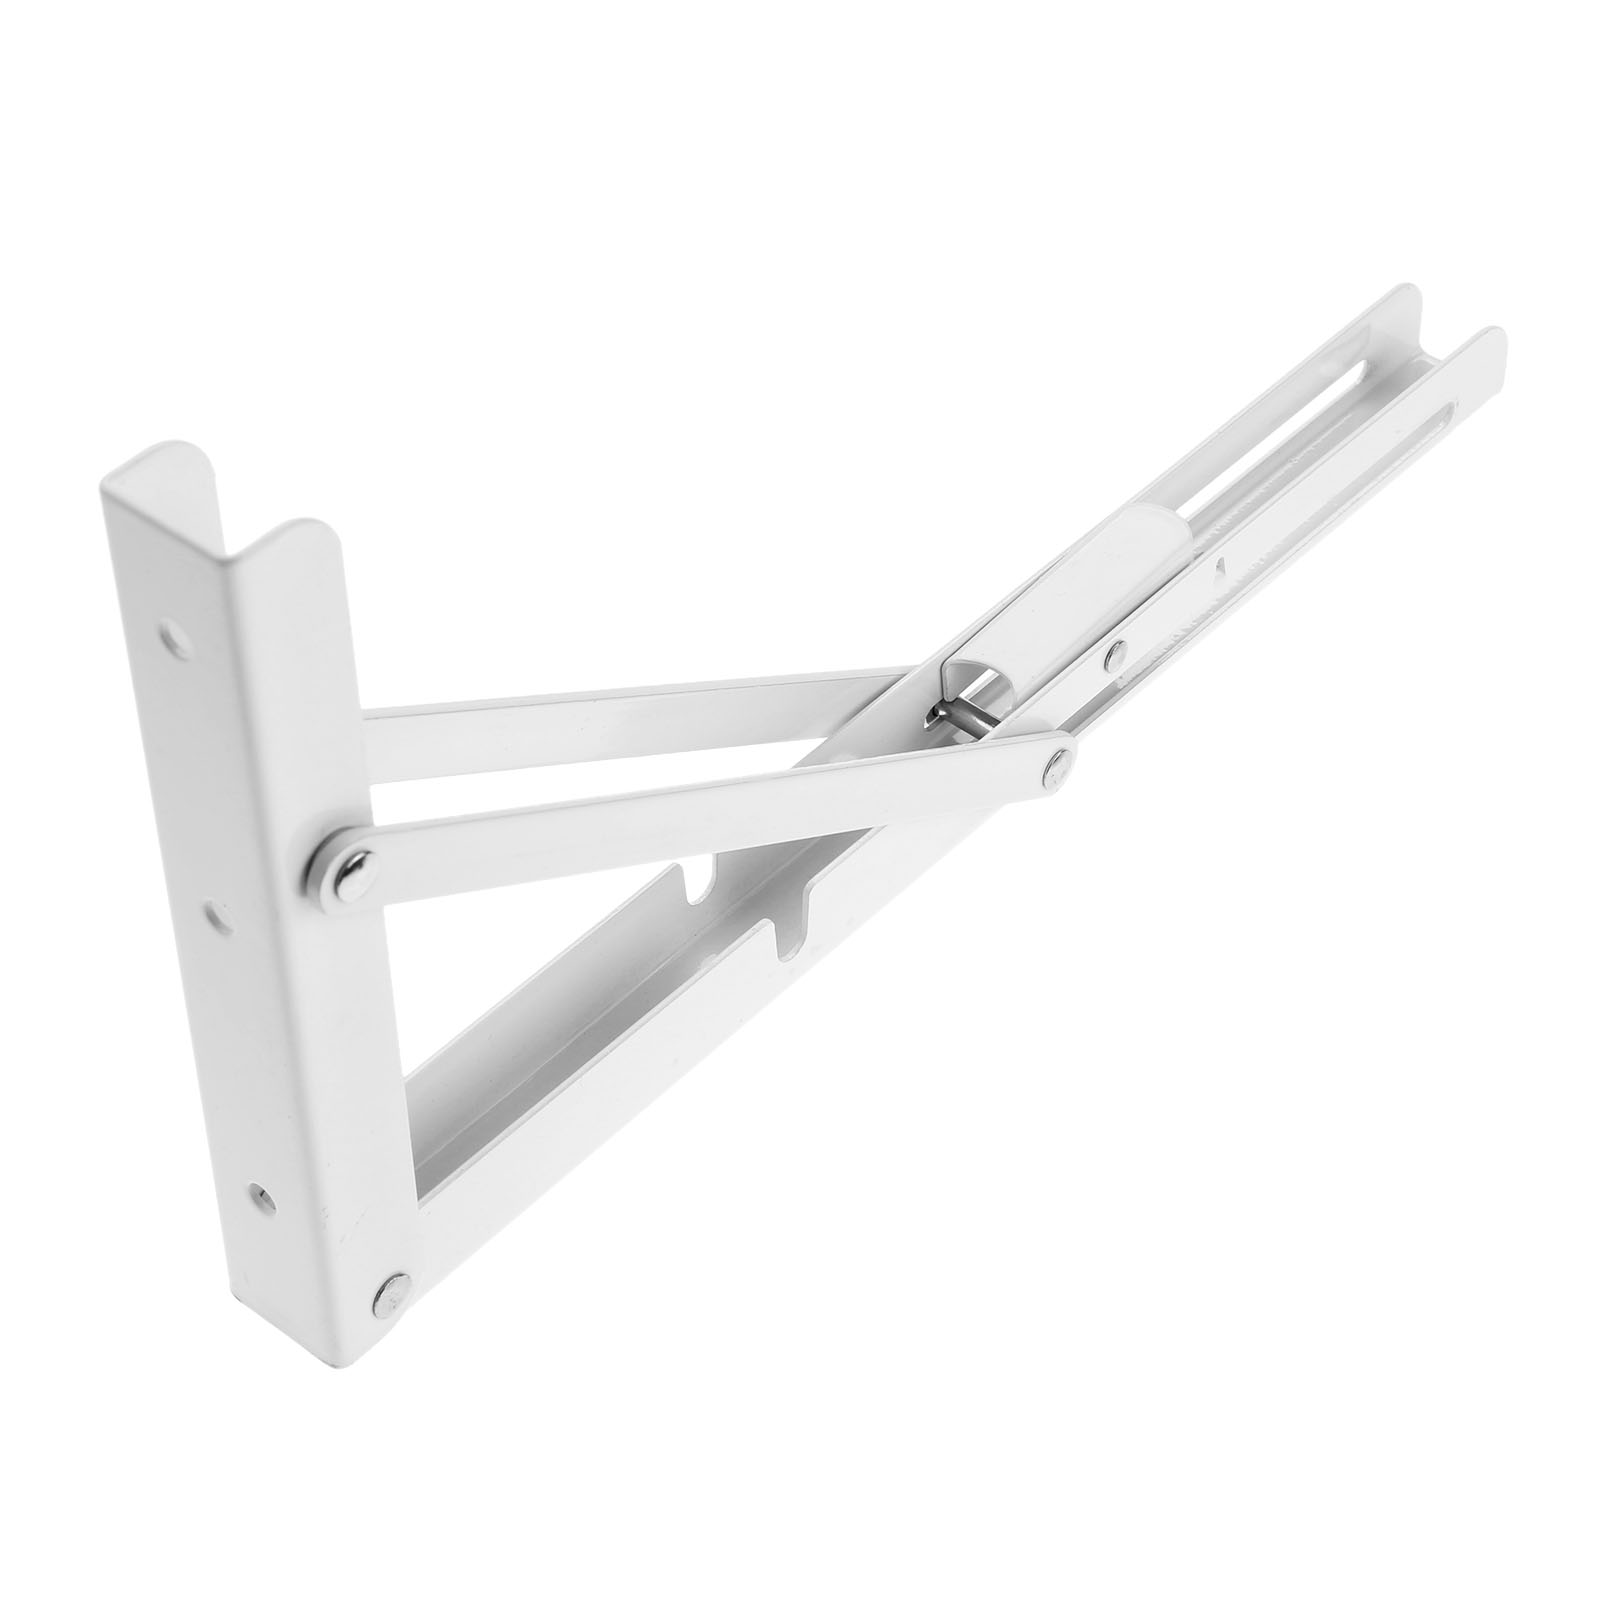 Dreld 2pcs Stainless Steel Folding Metal Wall Mounting Triangle Shelf Bracket White Wall Shelf Table Support Bracket 300*160*3mm Hardware Brackets & Clamps